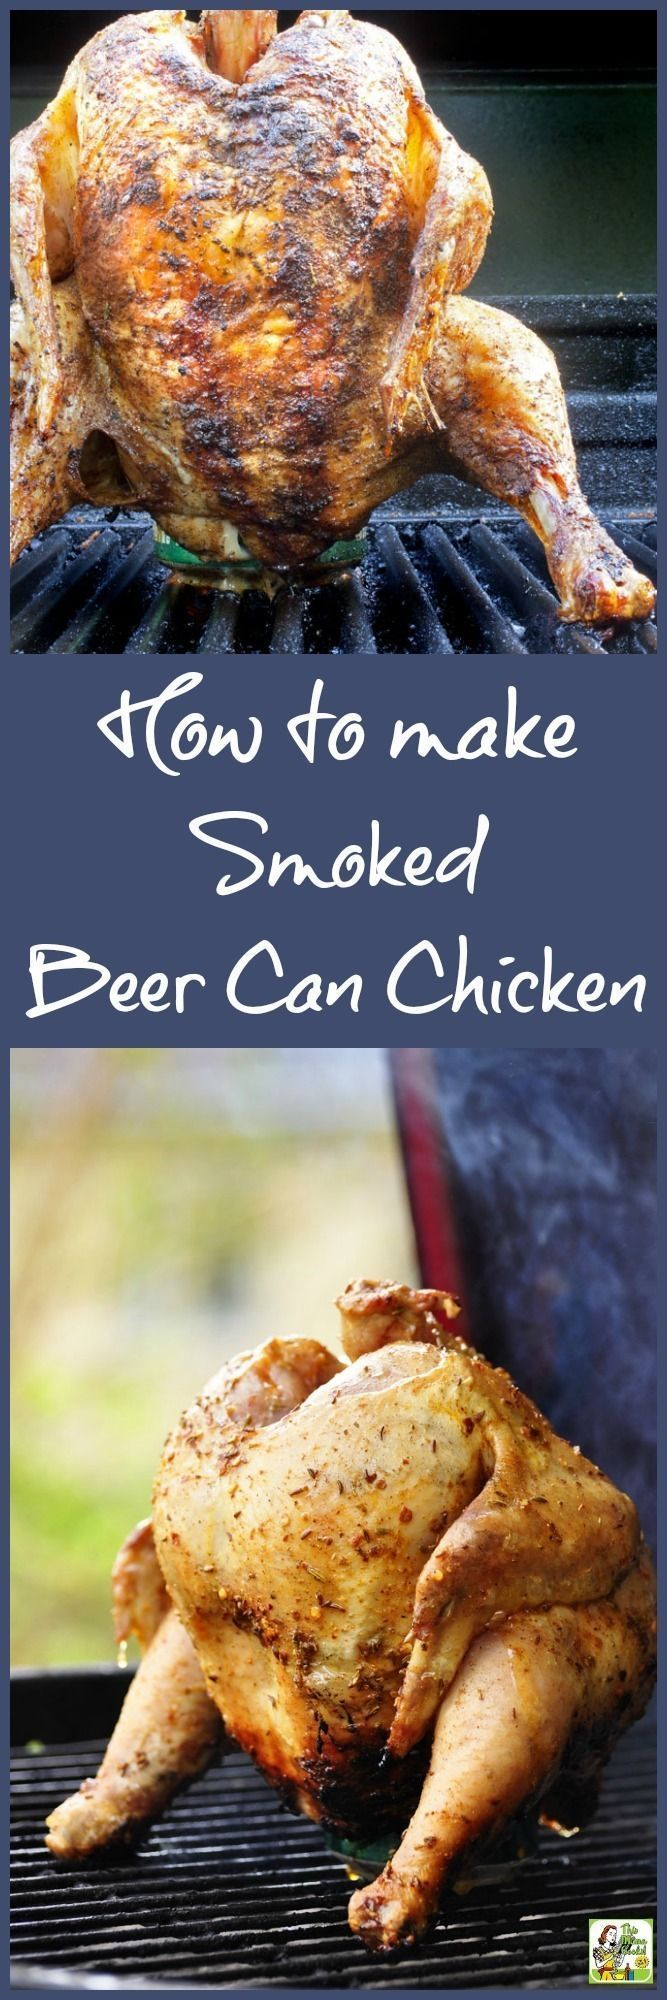 making smoked beer can chicken is easier than you think if you use bottled marinade or